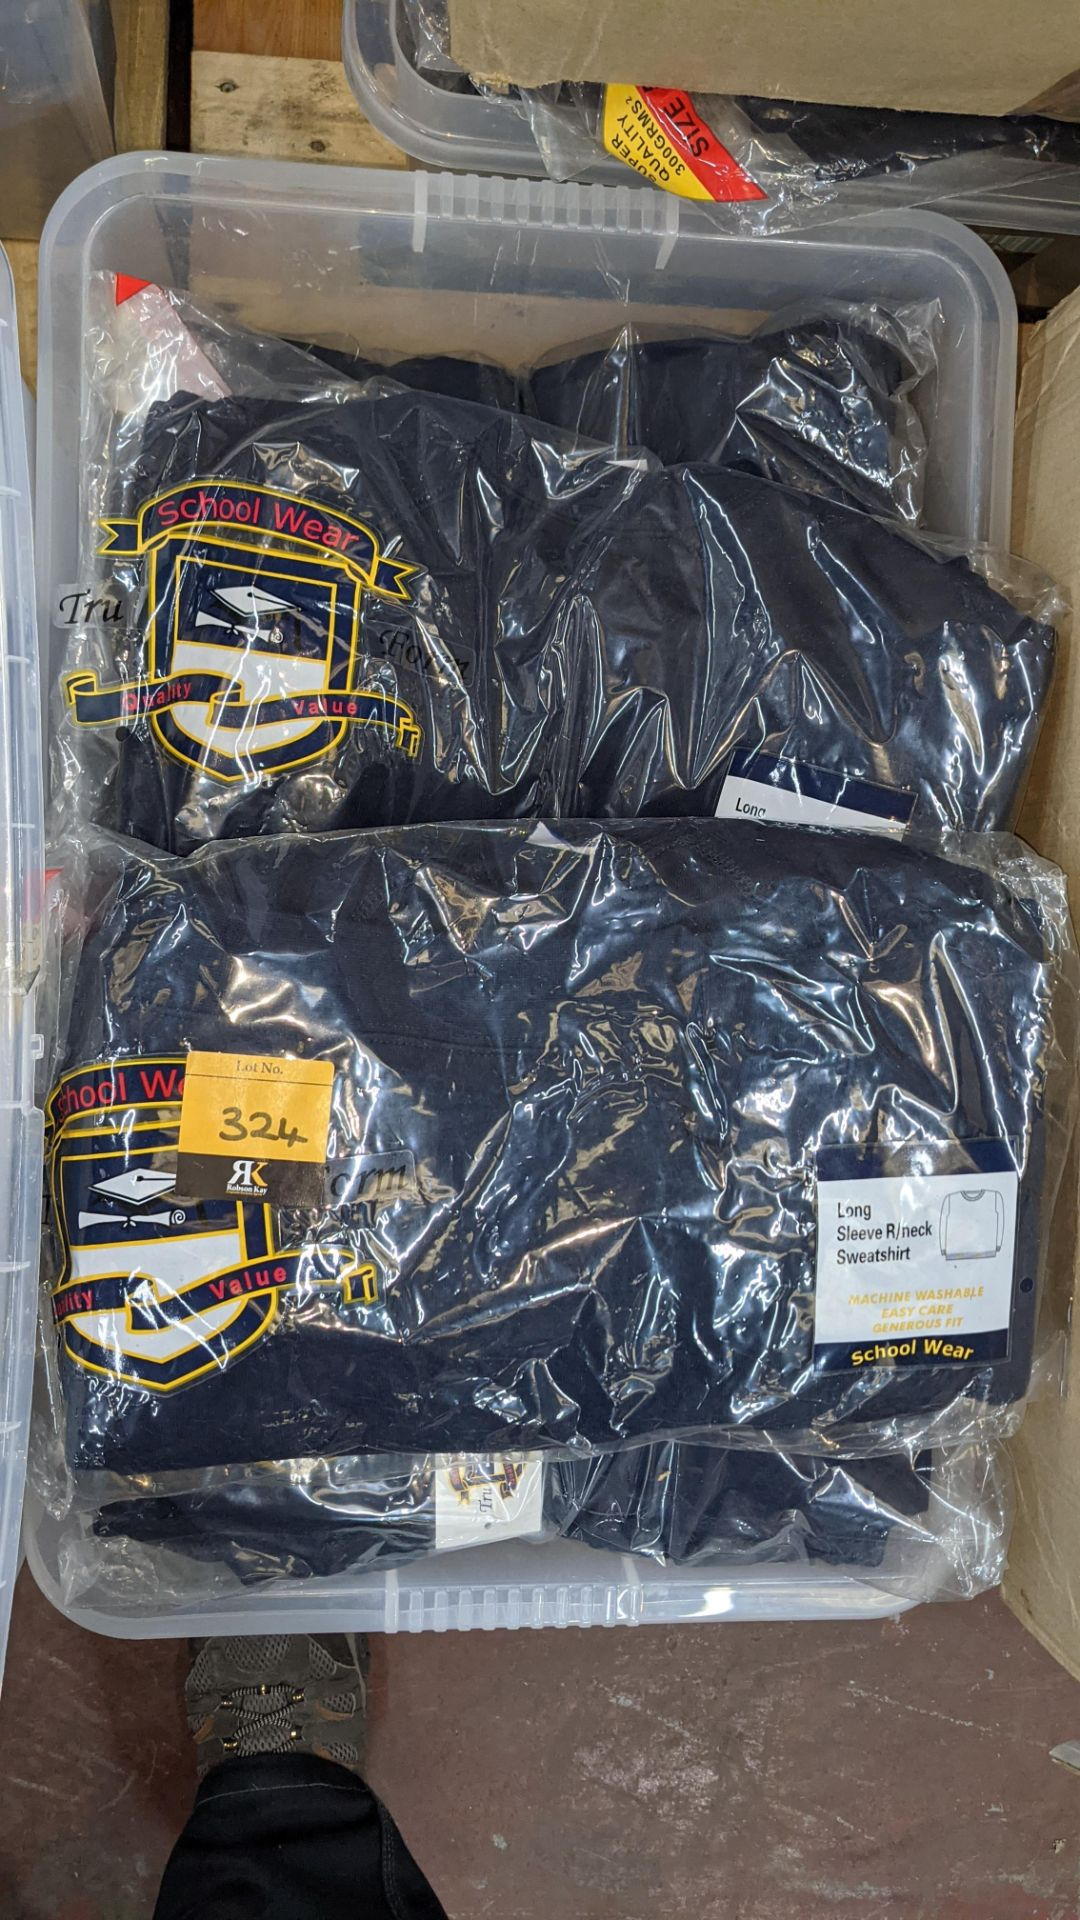 Approx 27 off navy long sleeve children's sweatshirts - the contents of 1 crate. NB crate excluded - Image 4 of 4